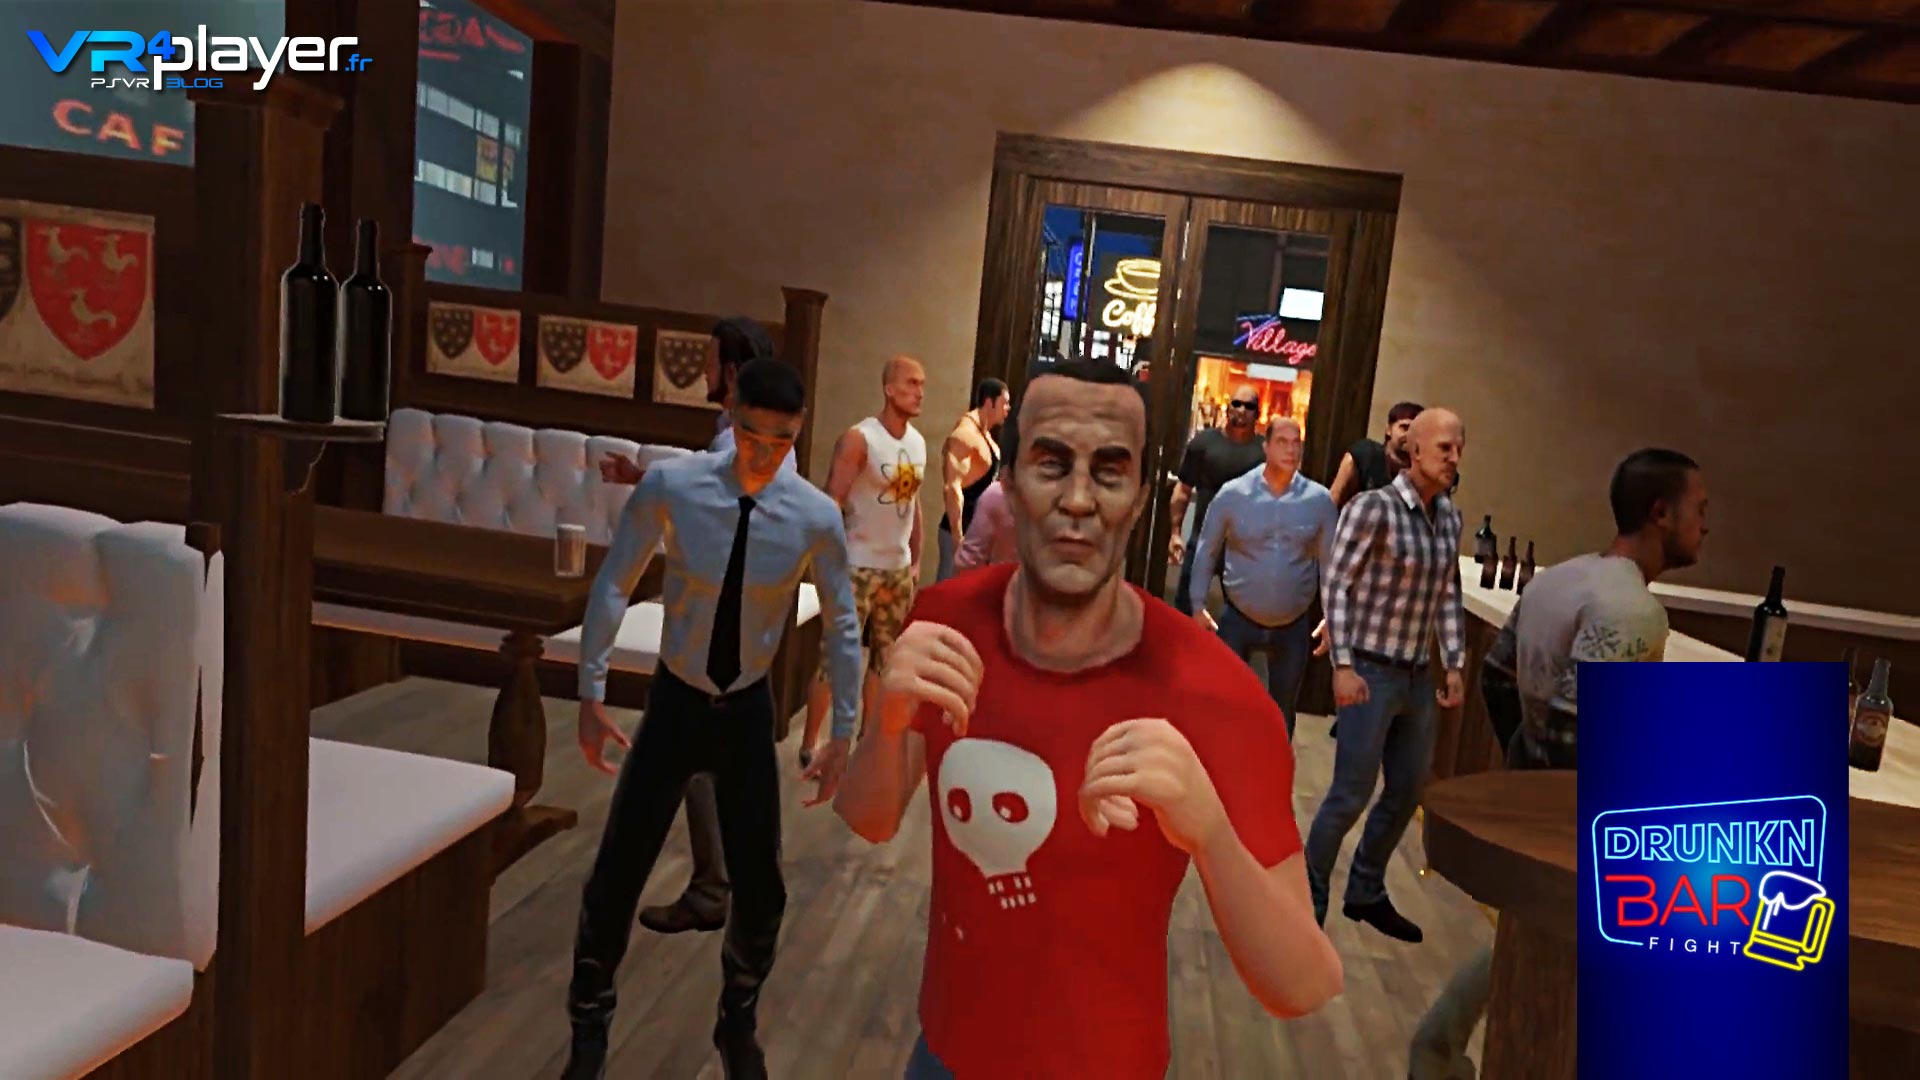 Drunkn Bar Fight VR4player.fr